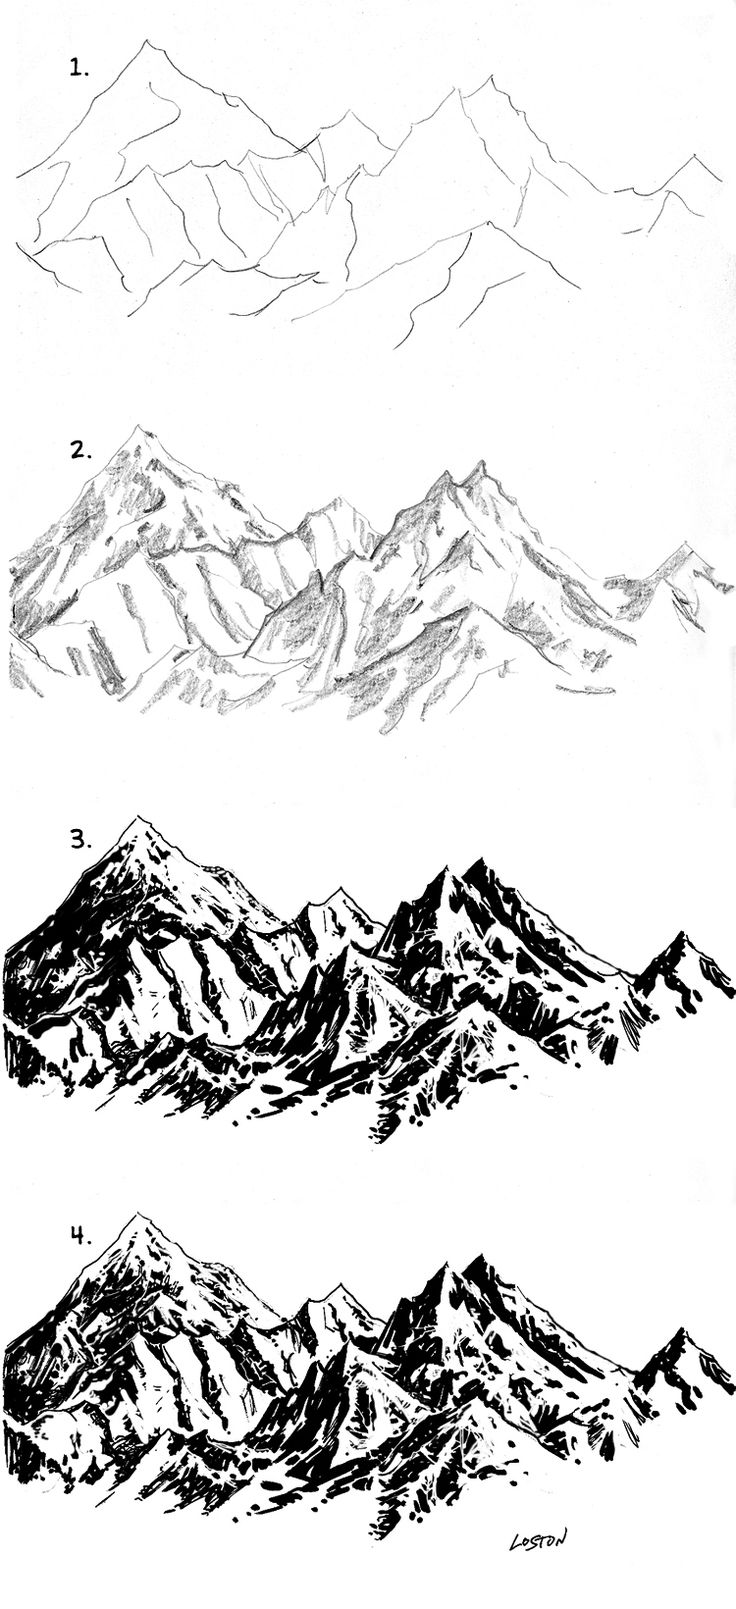 Drawn hill black and white Drawing ideas Mountain Rocks Rendering